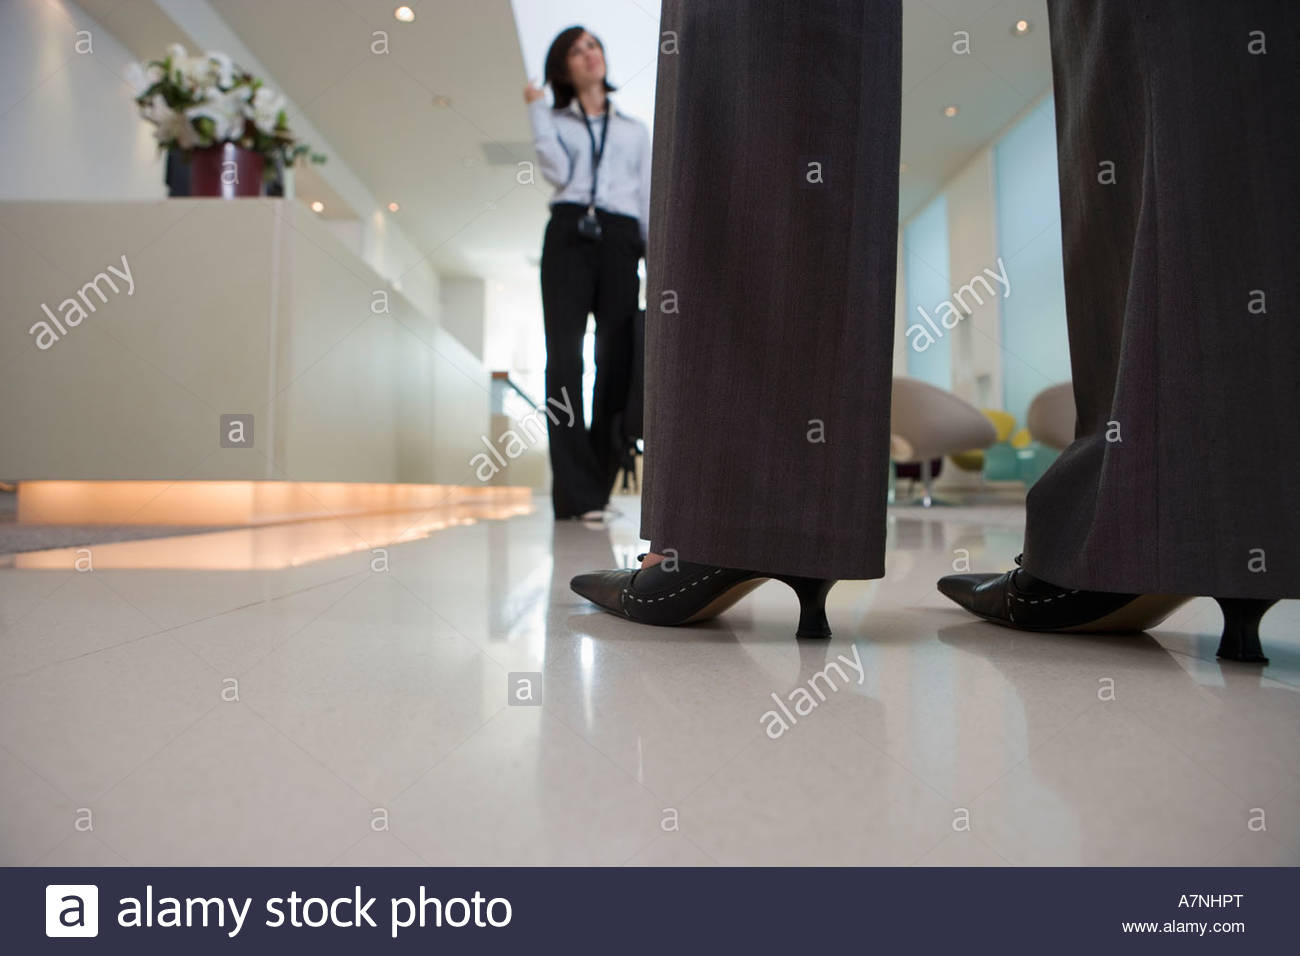 Two businesswomen talking in lobby low section surface level focus on legs and high heels in foreground - Stock Image